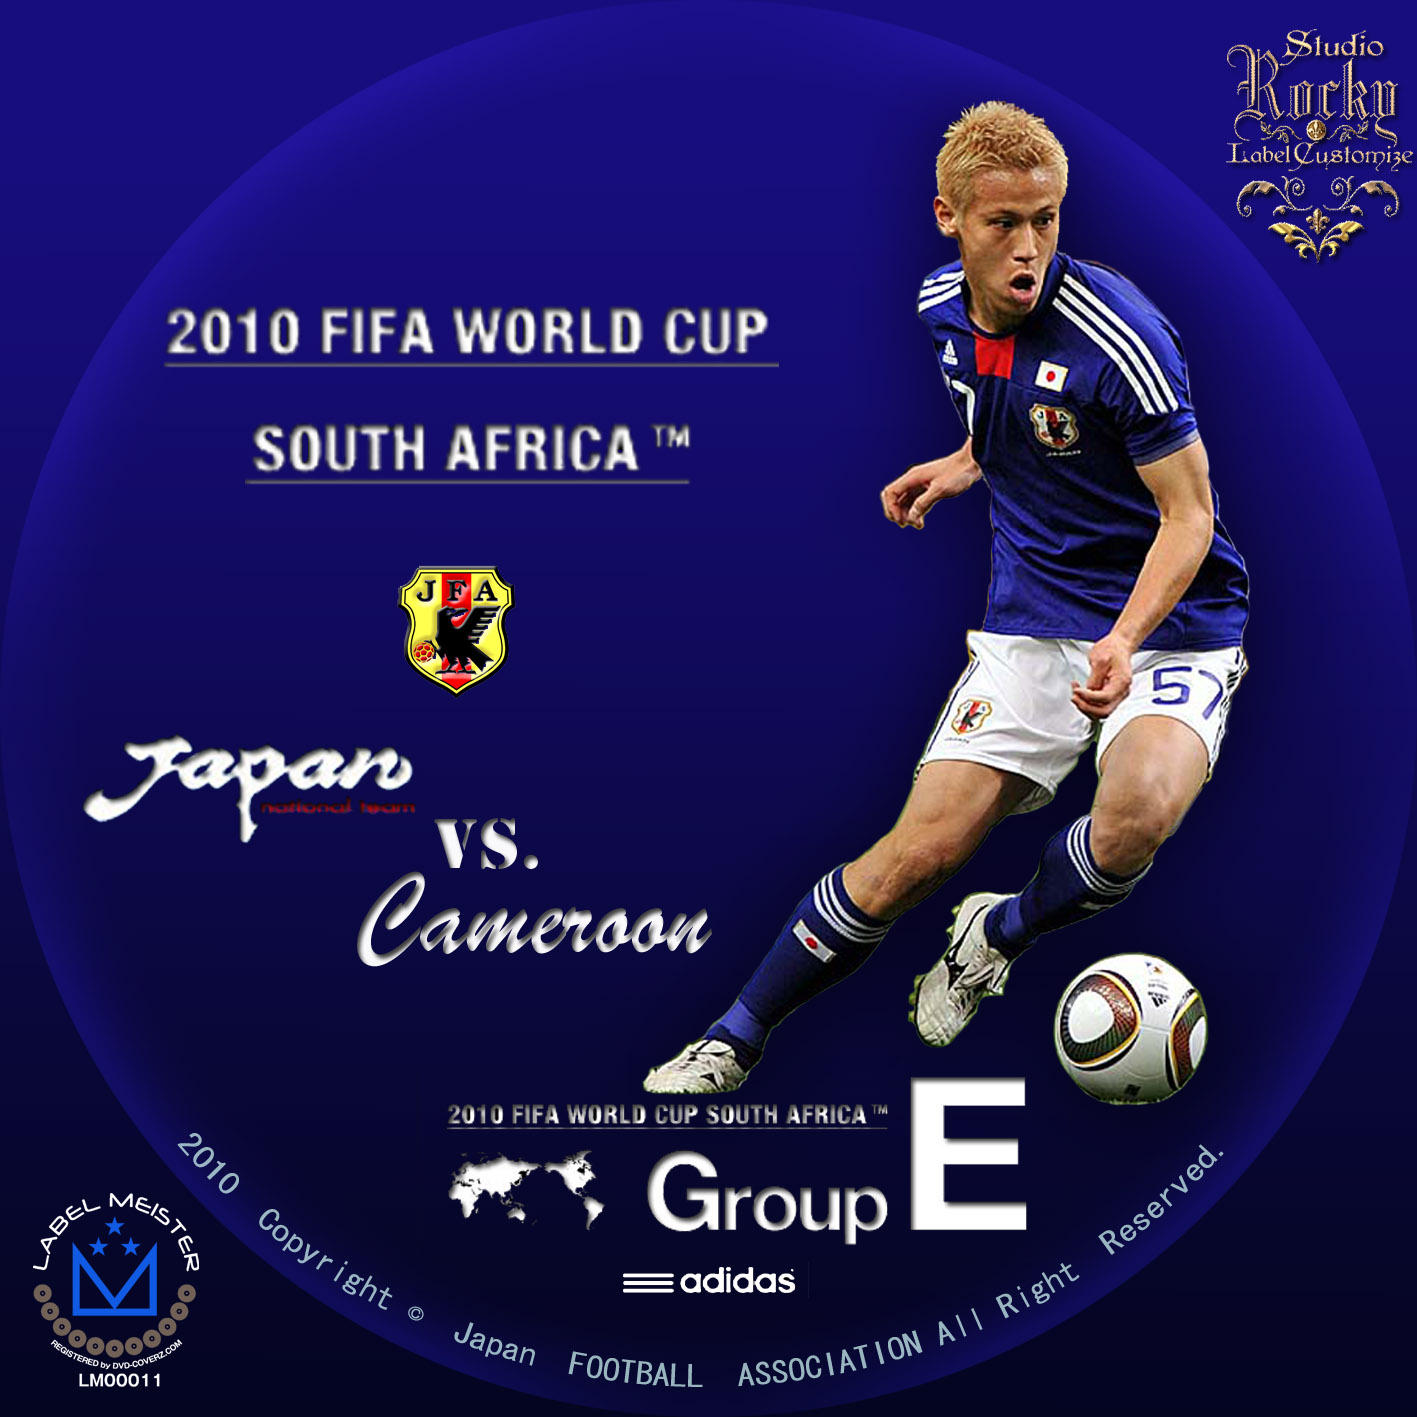 2010 FIFA World Cup South Africa / Group E